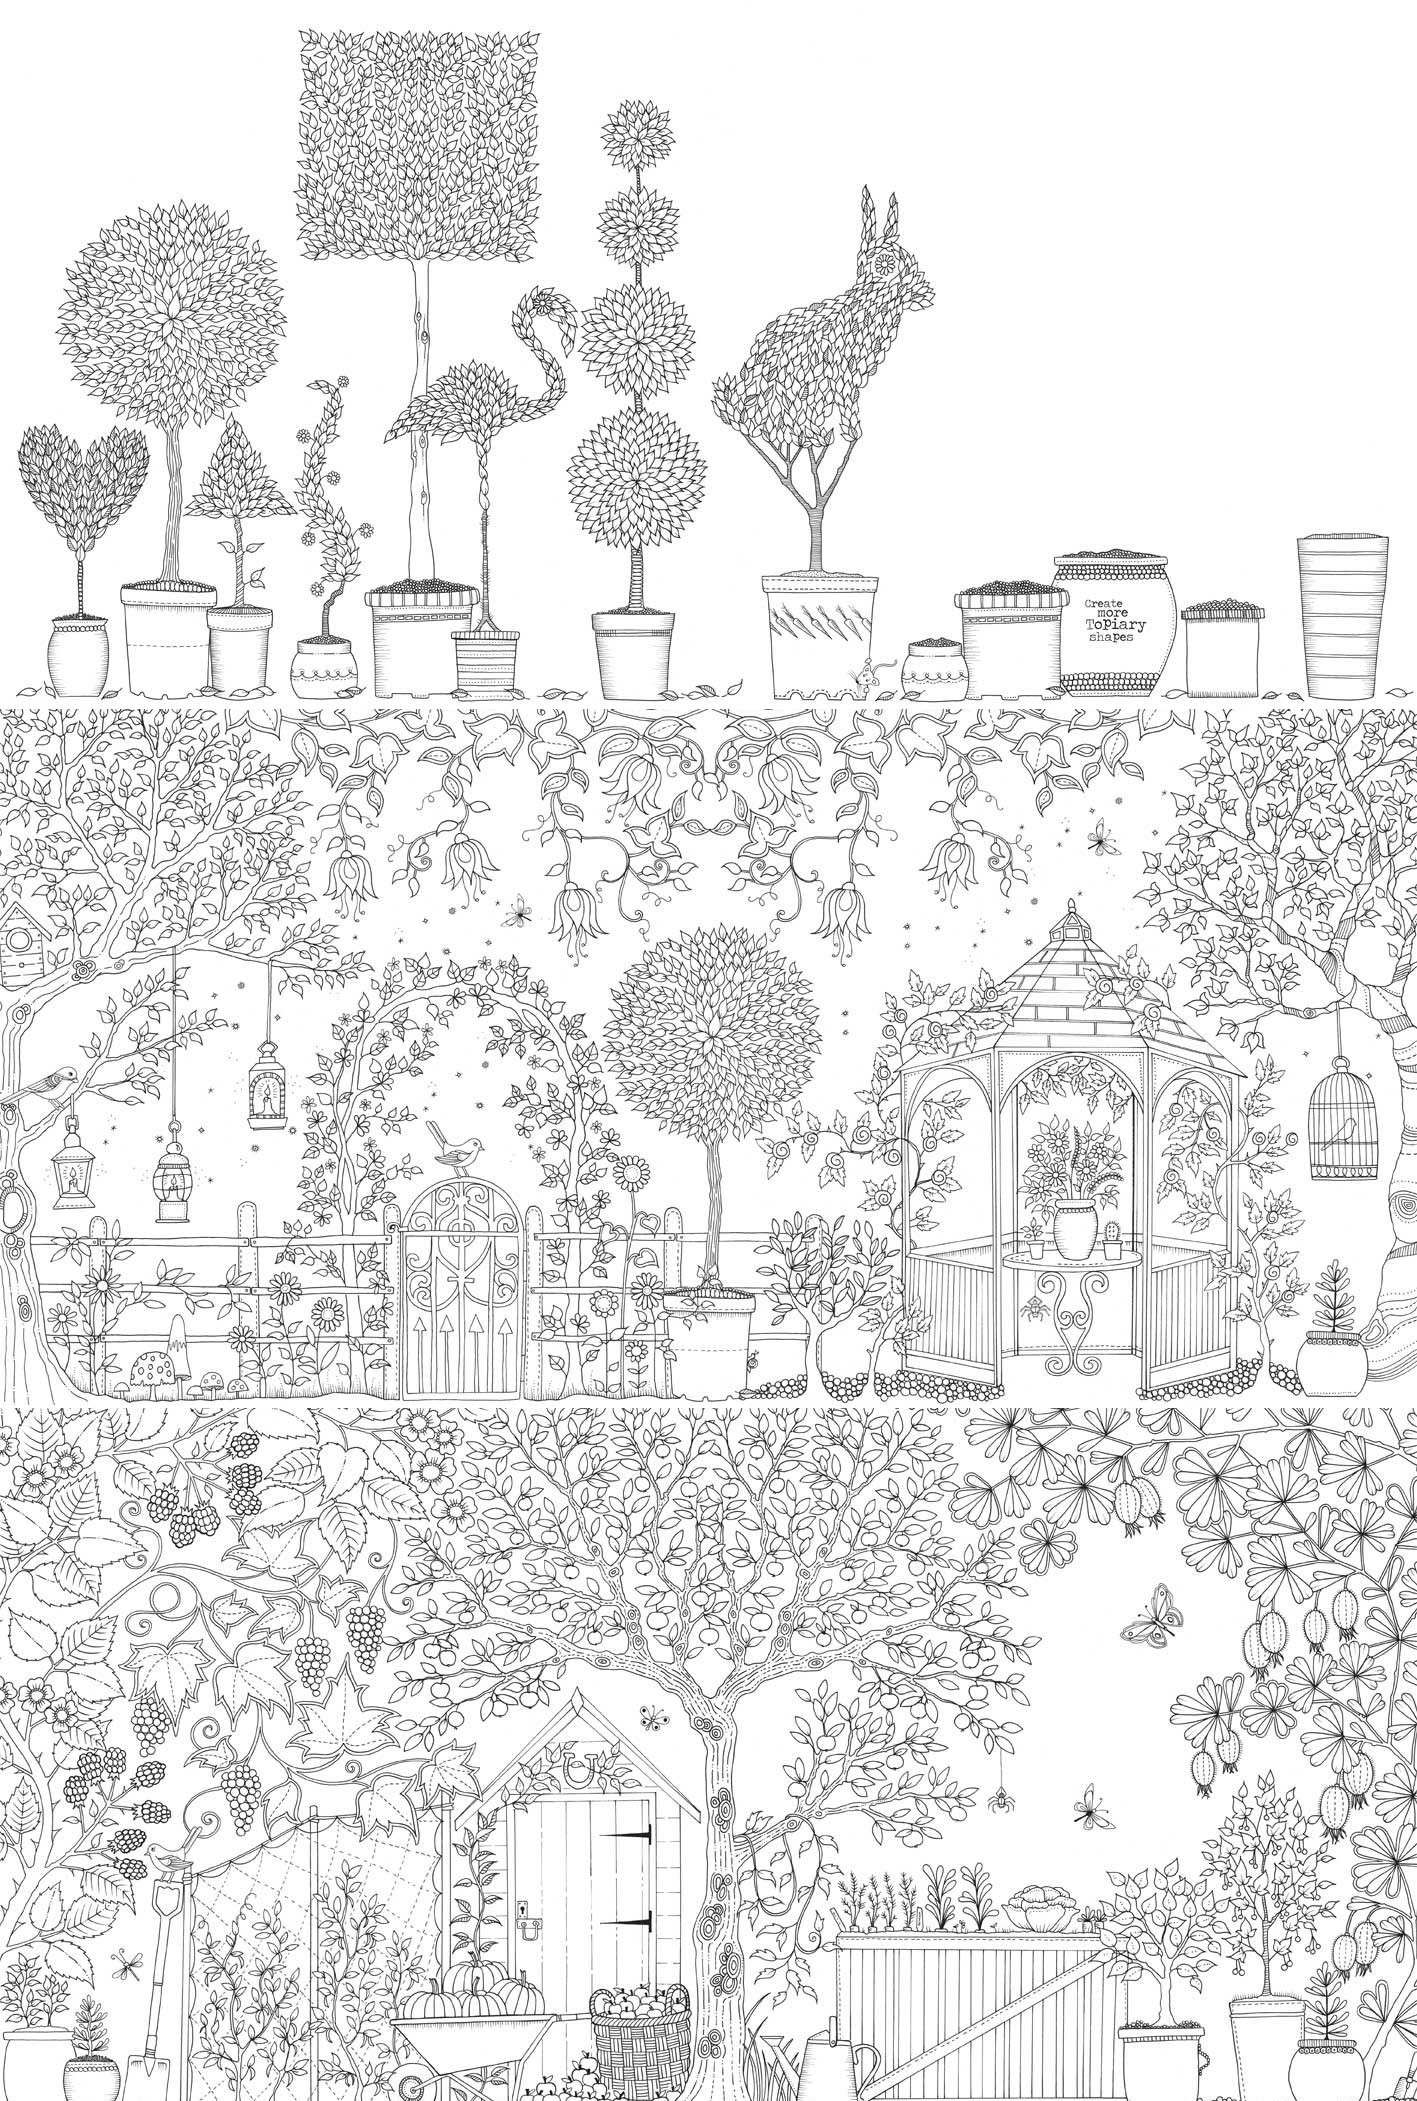 84 Enchanted Forest Coloring Book Secret Garden